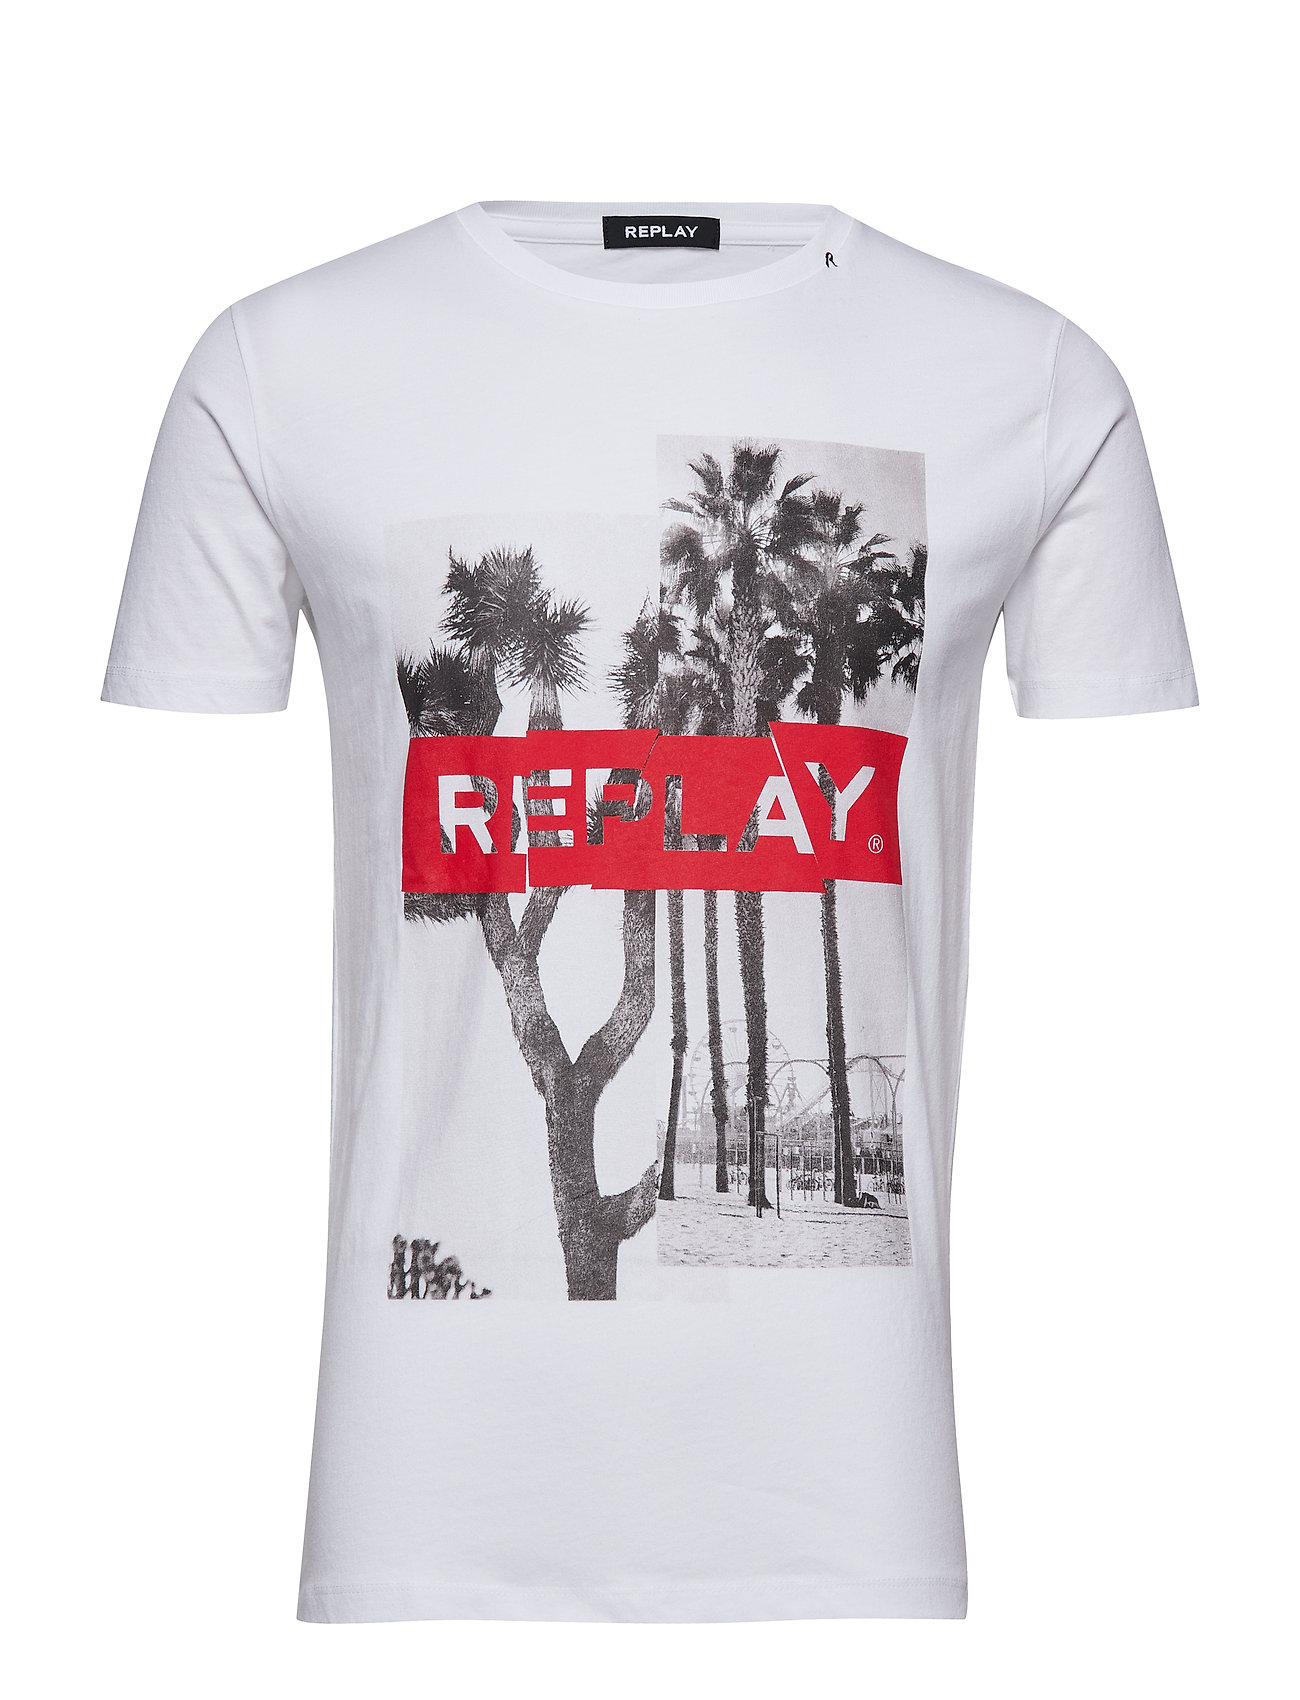 7d56a635277 Tshirt (White) (£44) - Replay -